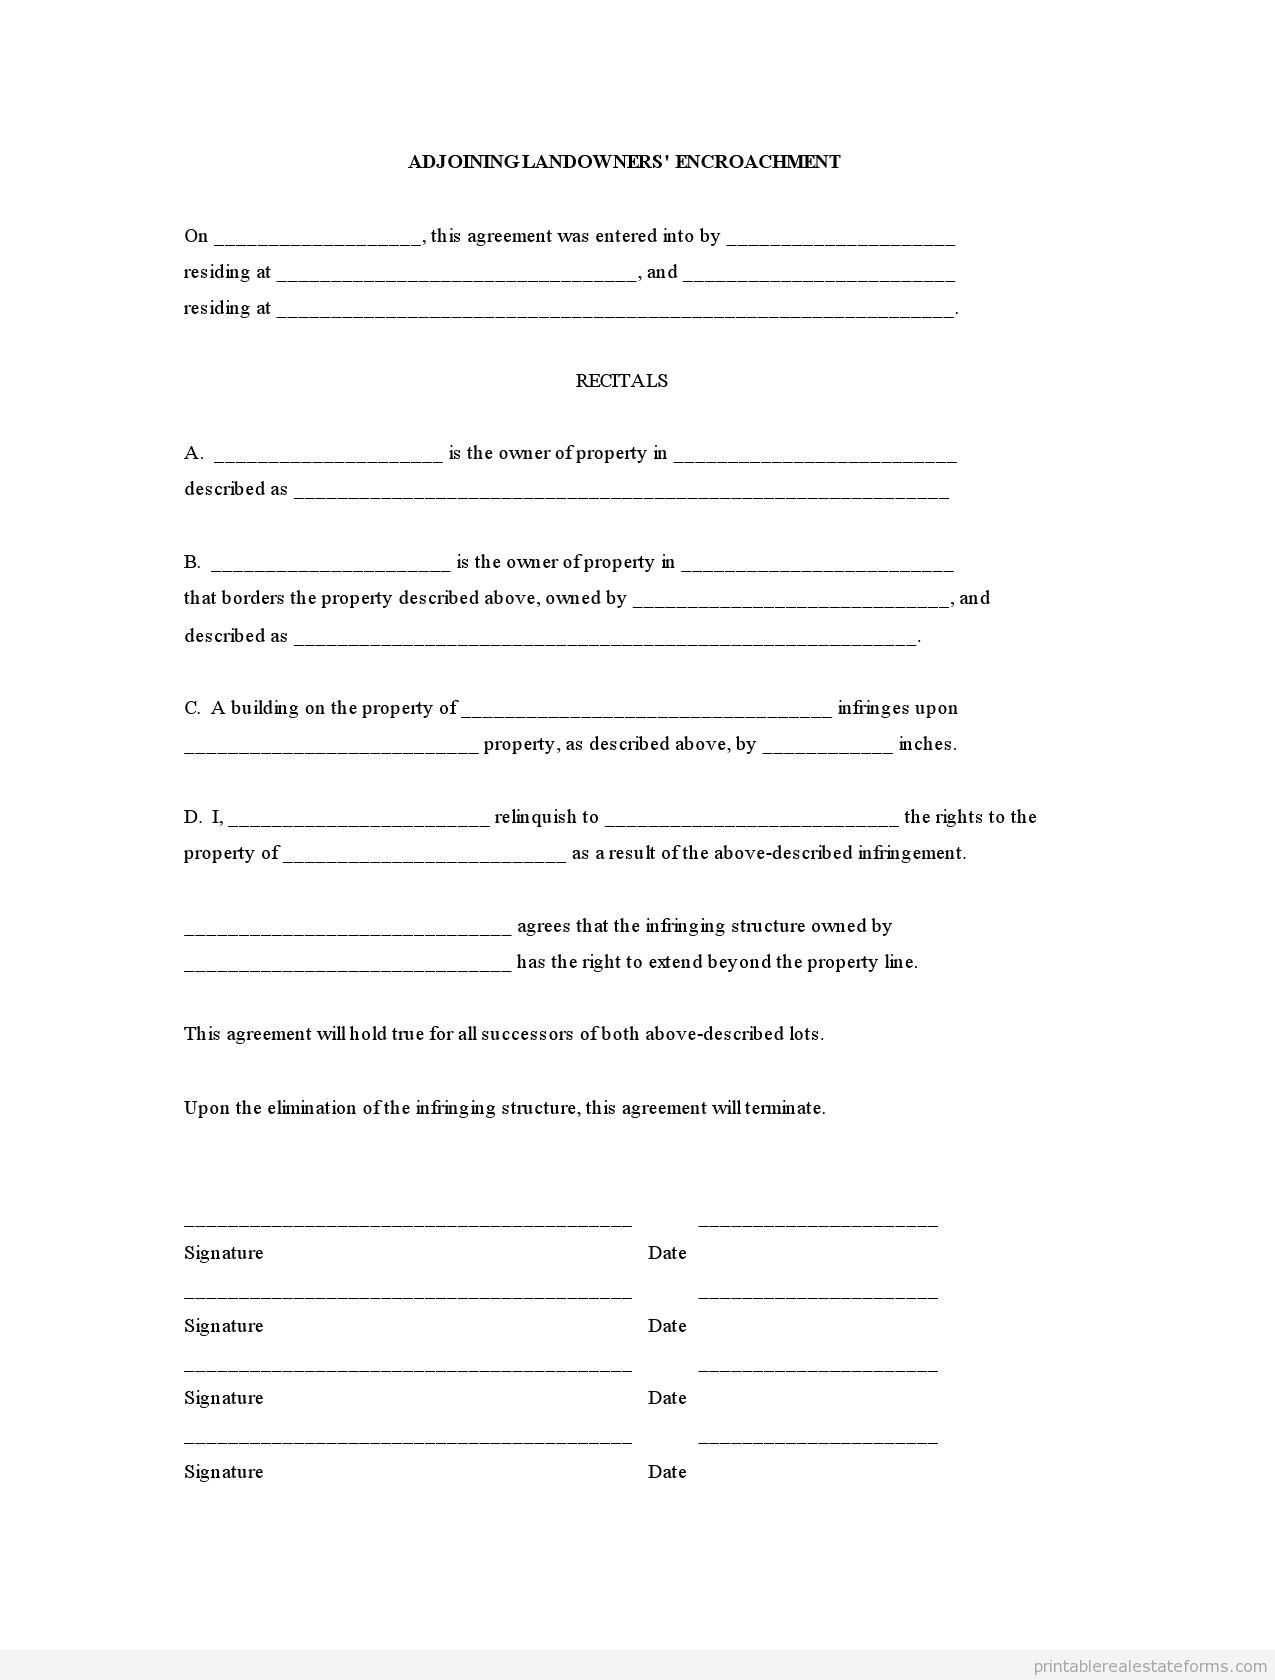 Sample Printable Adjoining Landowners Encroachment Form Printable